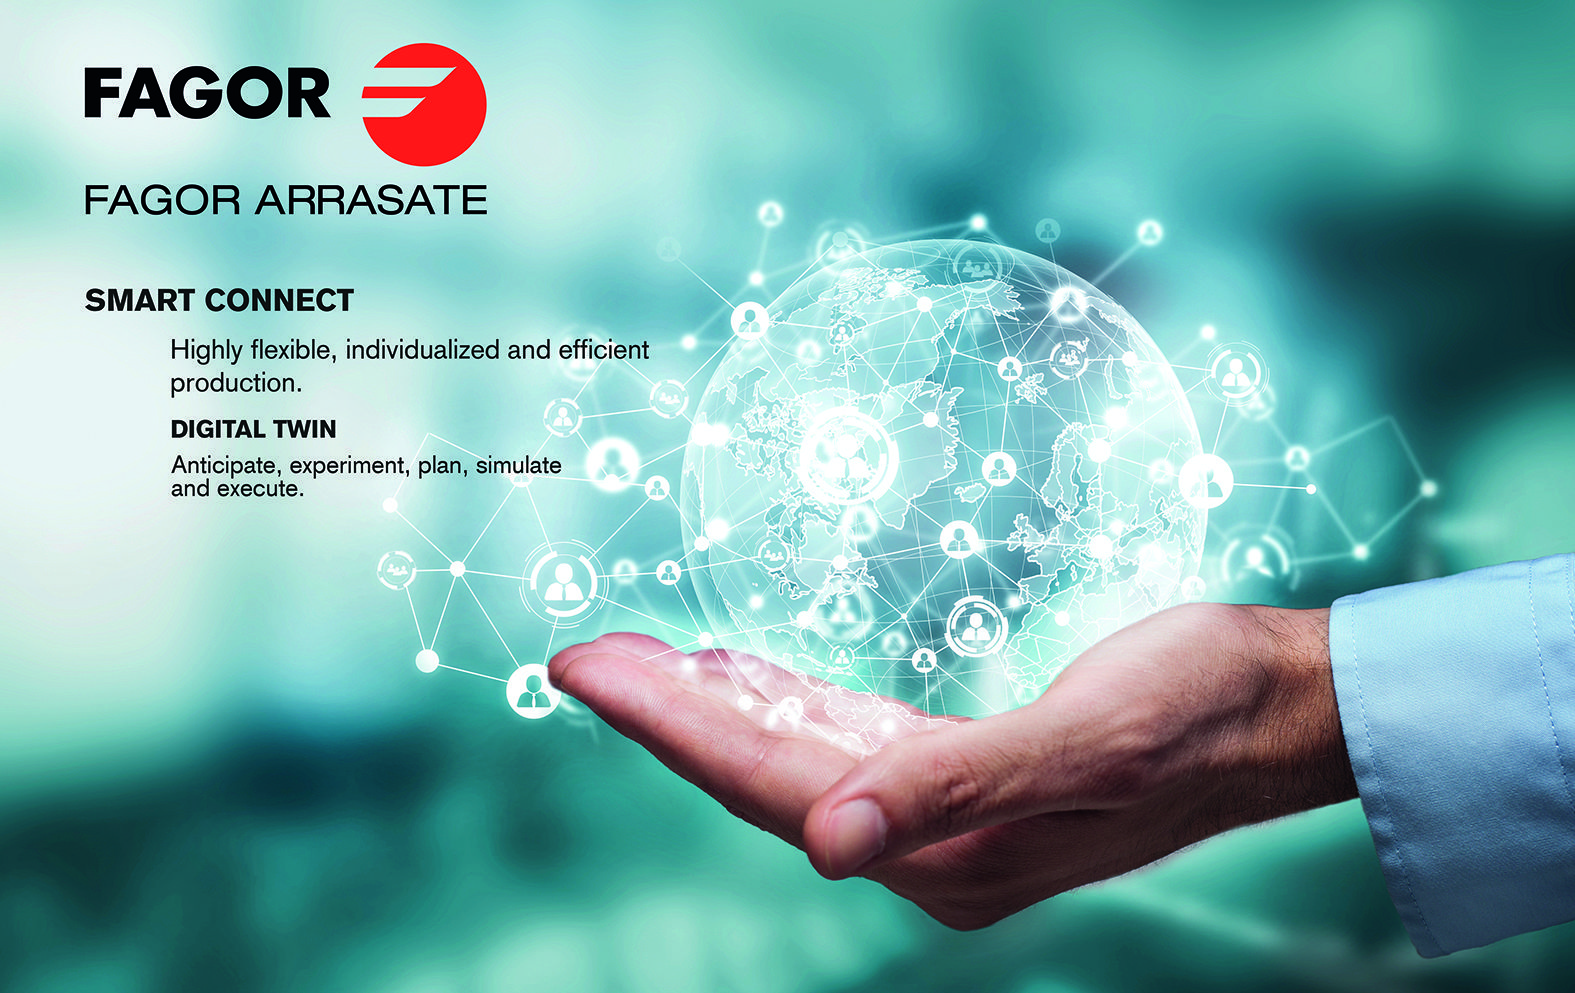 Fagor Arrasate event: FAGOR ARRASATE WILL BE EXHIBITING ITS DIGITALISATION SUPPORT SOLUTIONS AT THE MACHINE-TOOL BIENNIAL